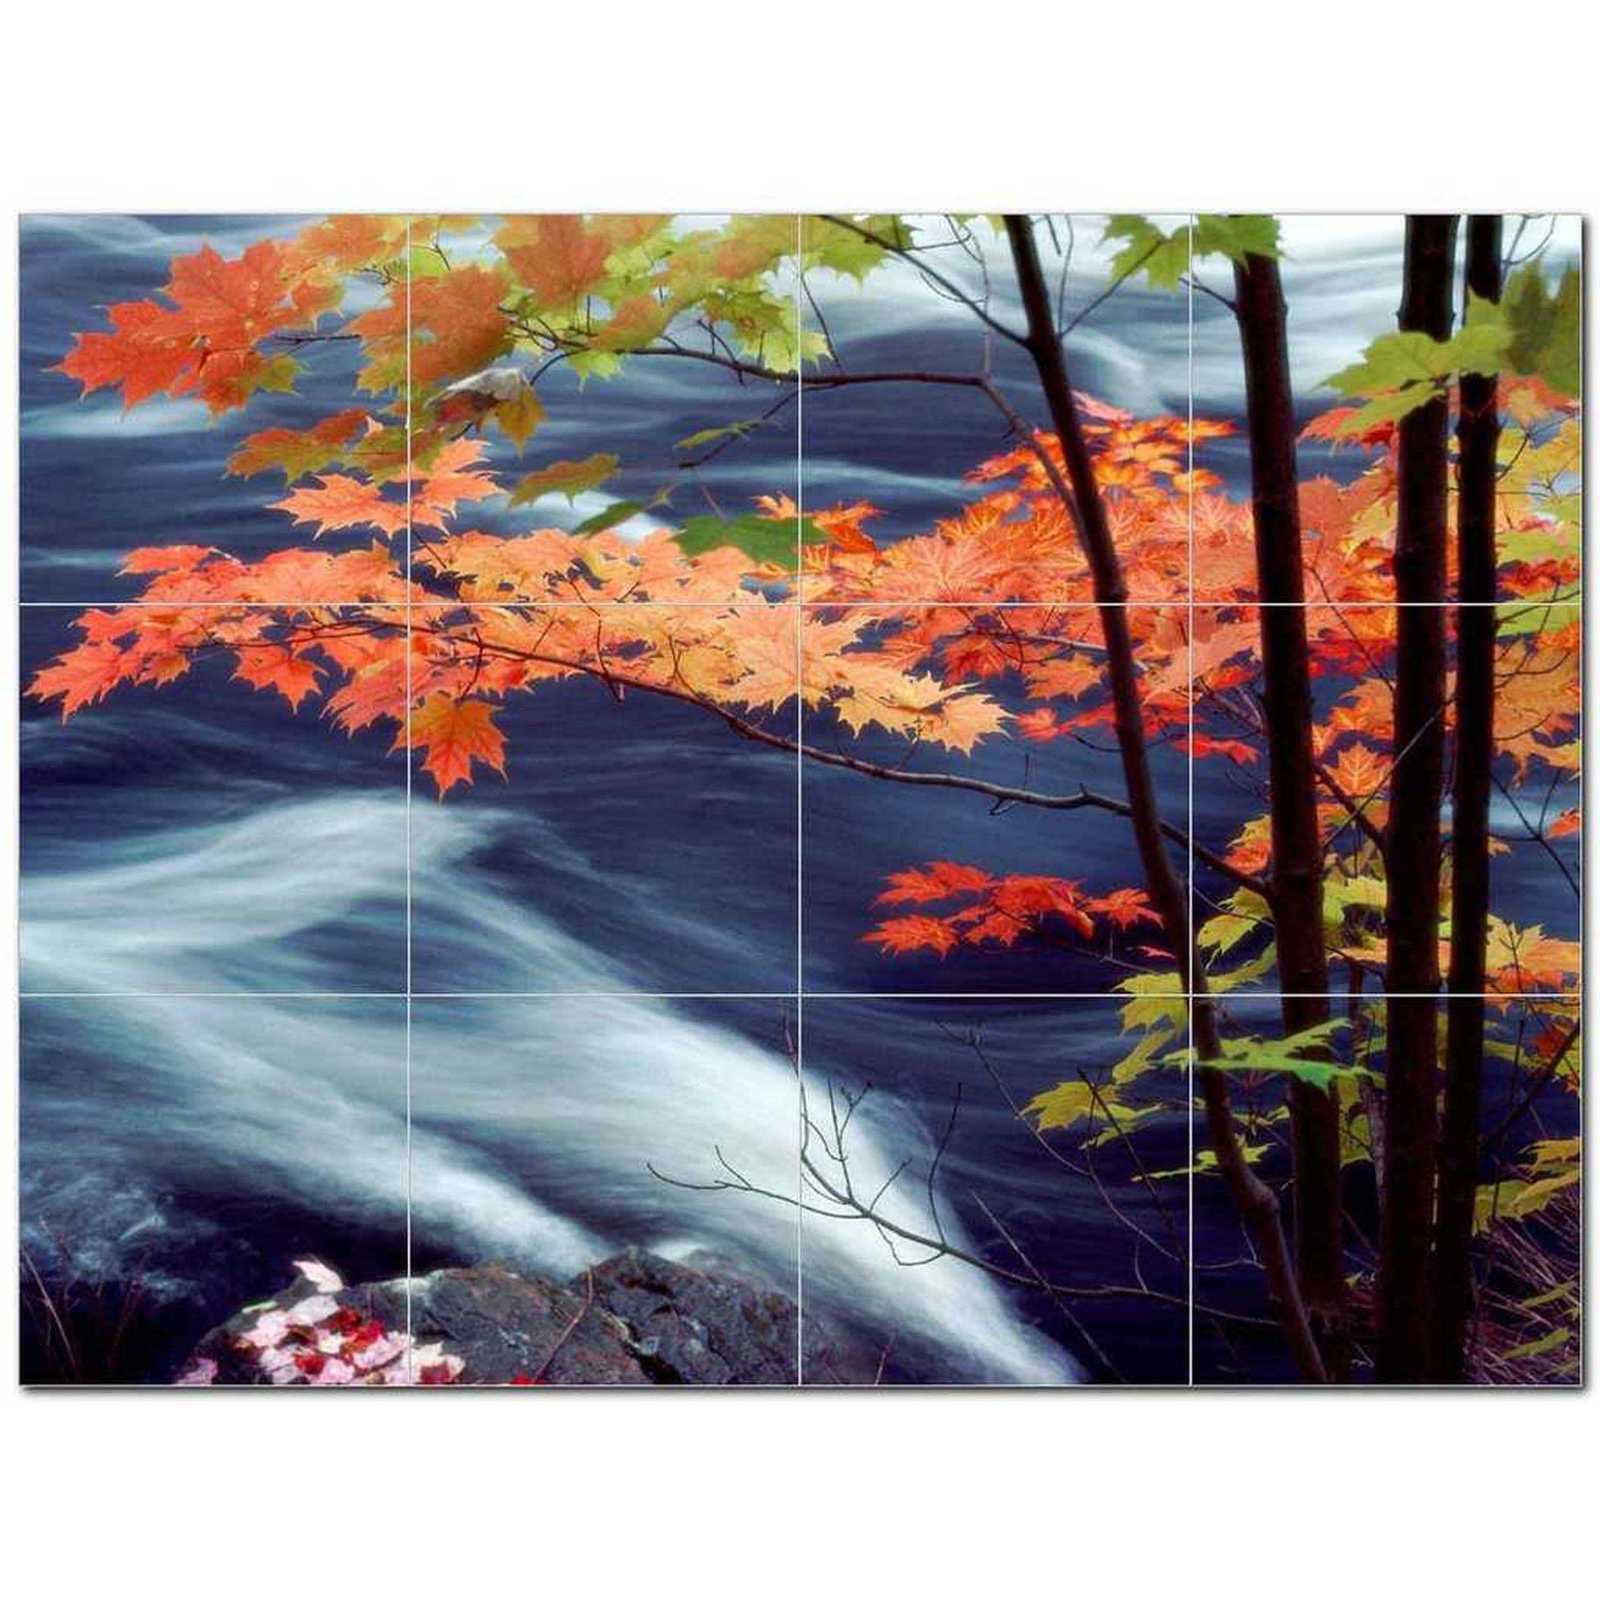 Primary image for River Picture Ceramic Tile Mural Kitchen Backsplash Bathroom Shower BAZ405742